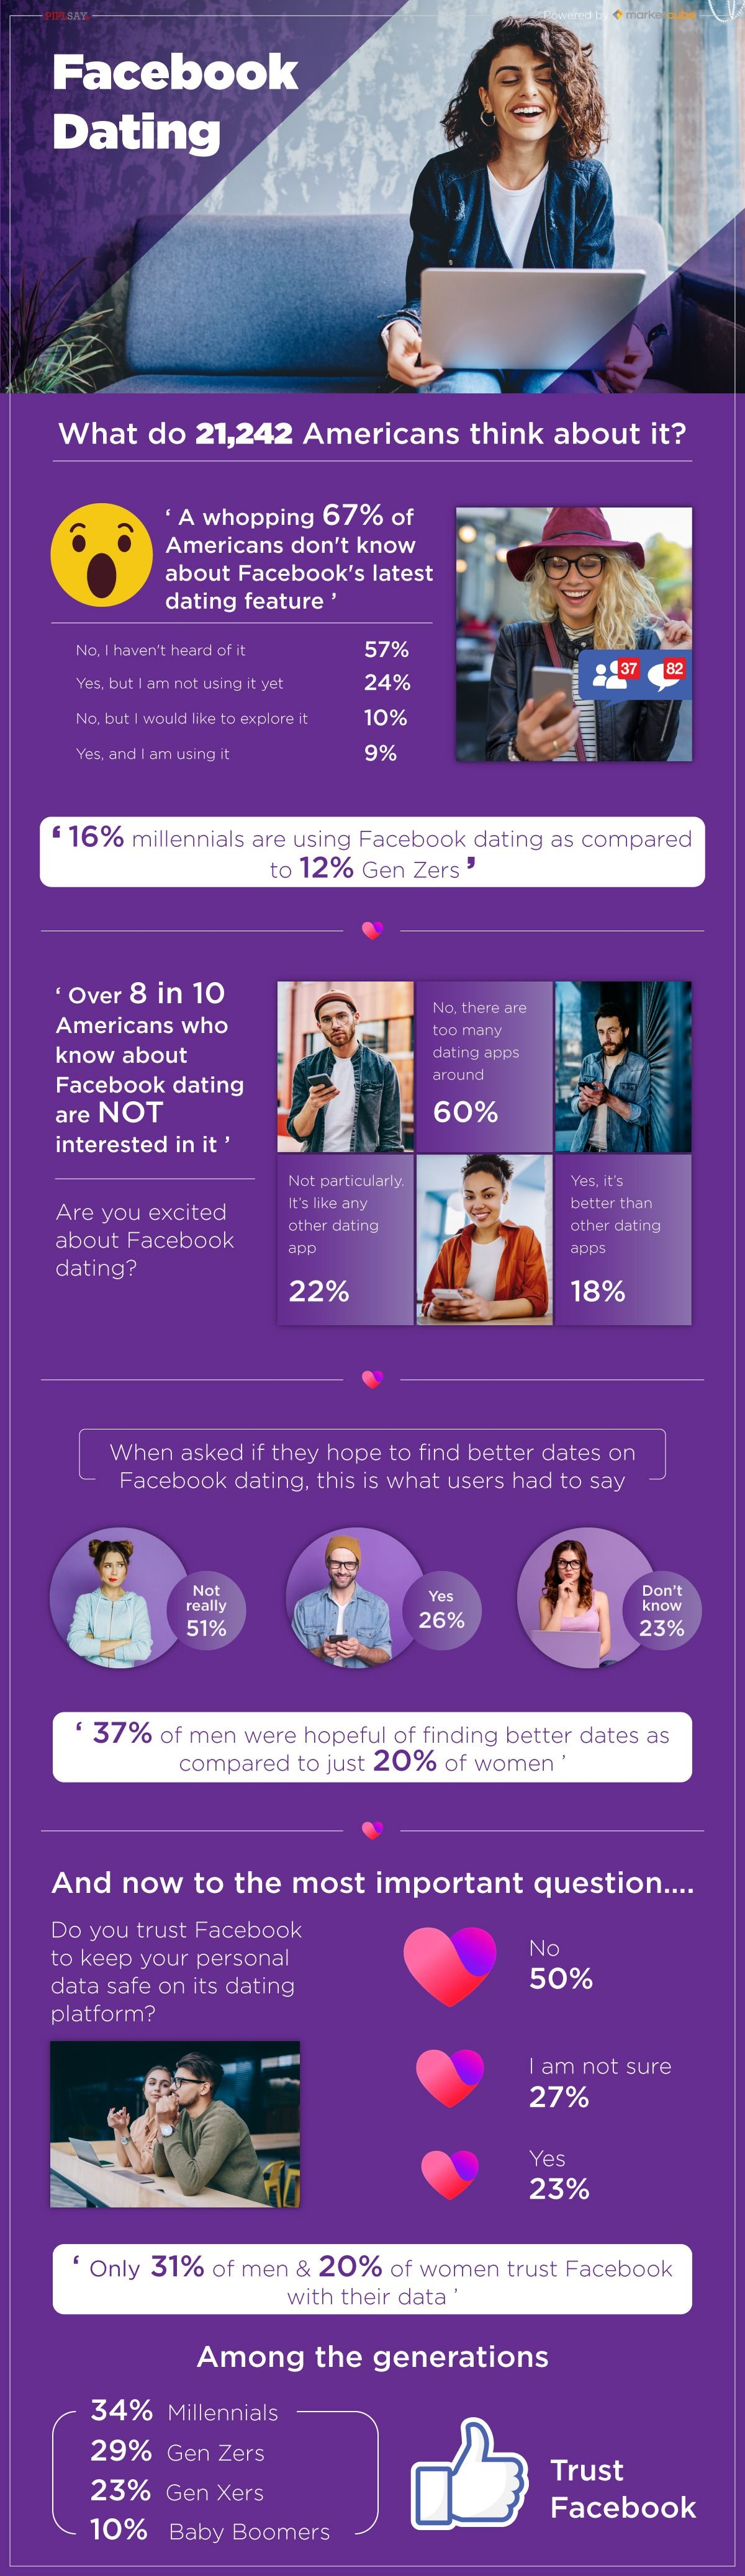 Facebook Dating survey report